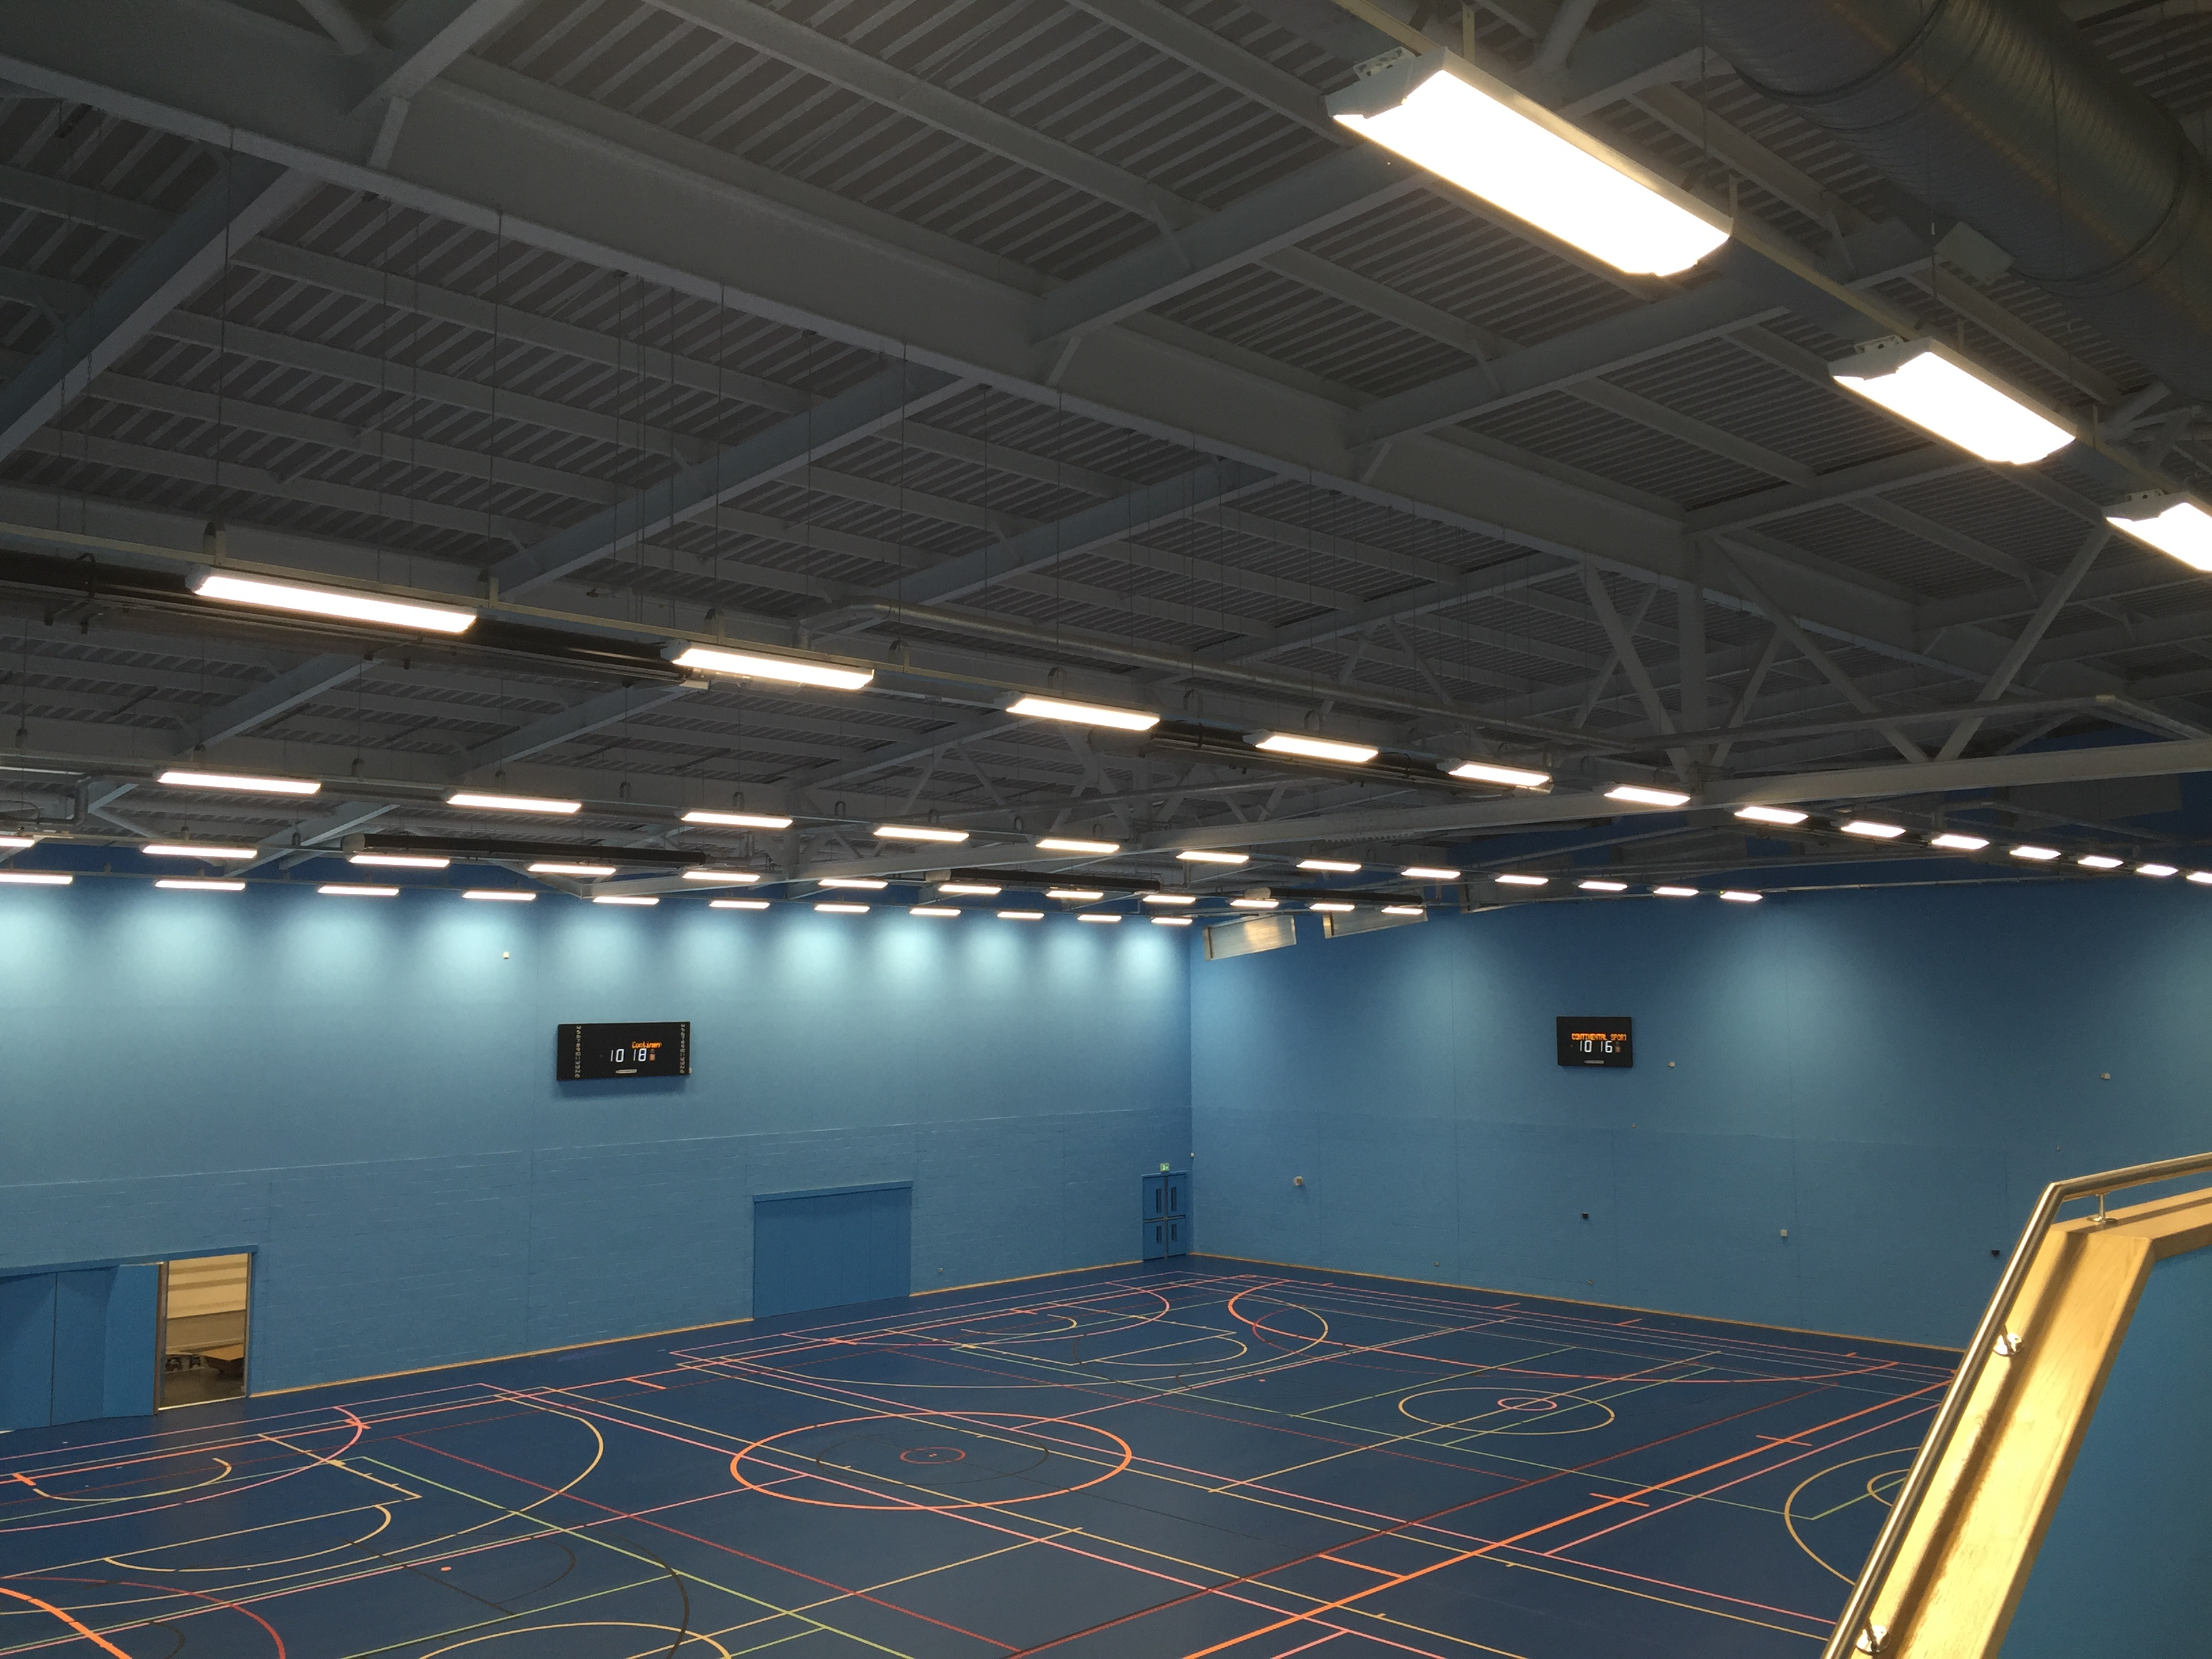 Sports Hall View from Viewing Gallery